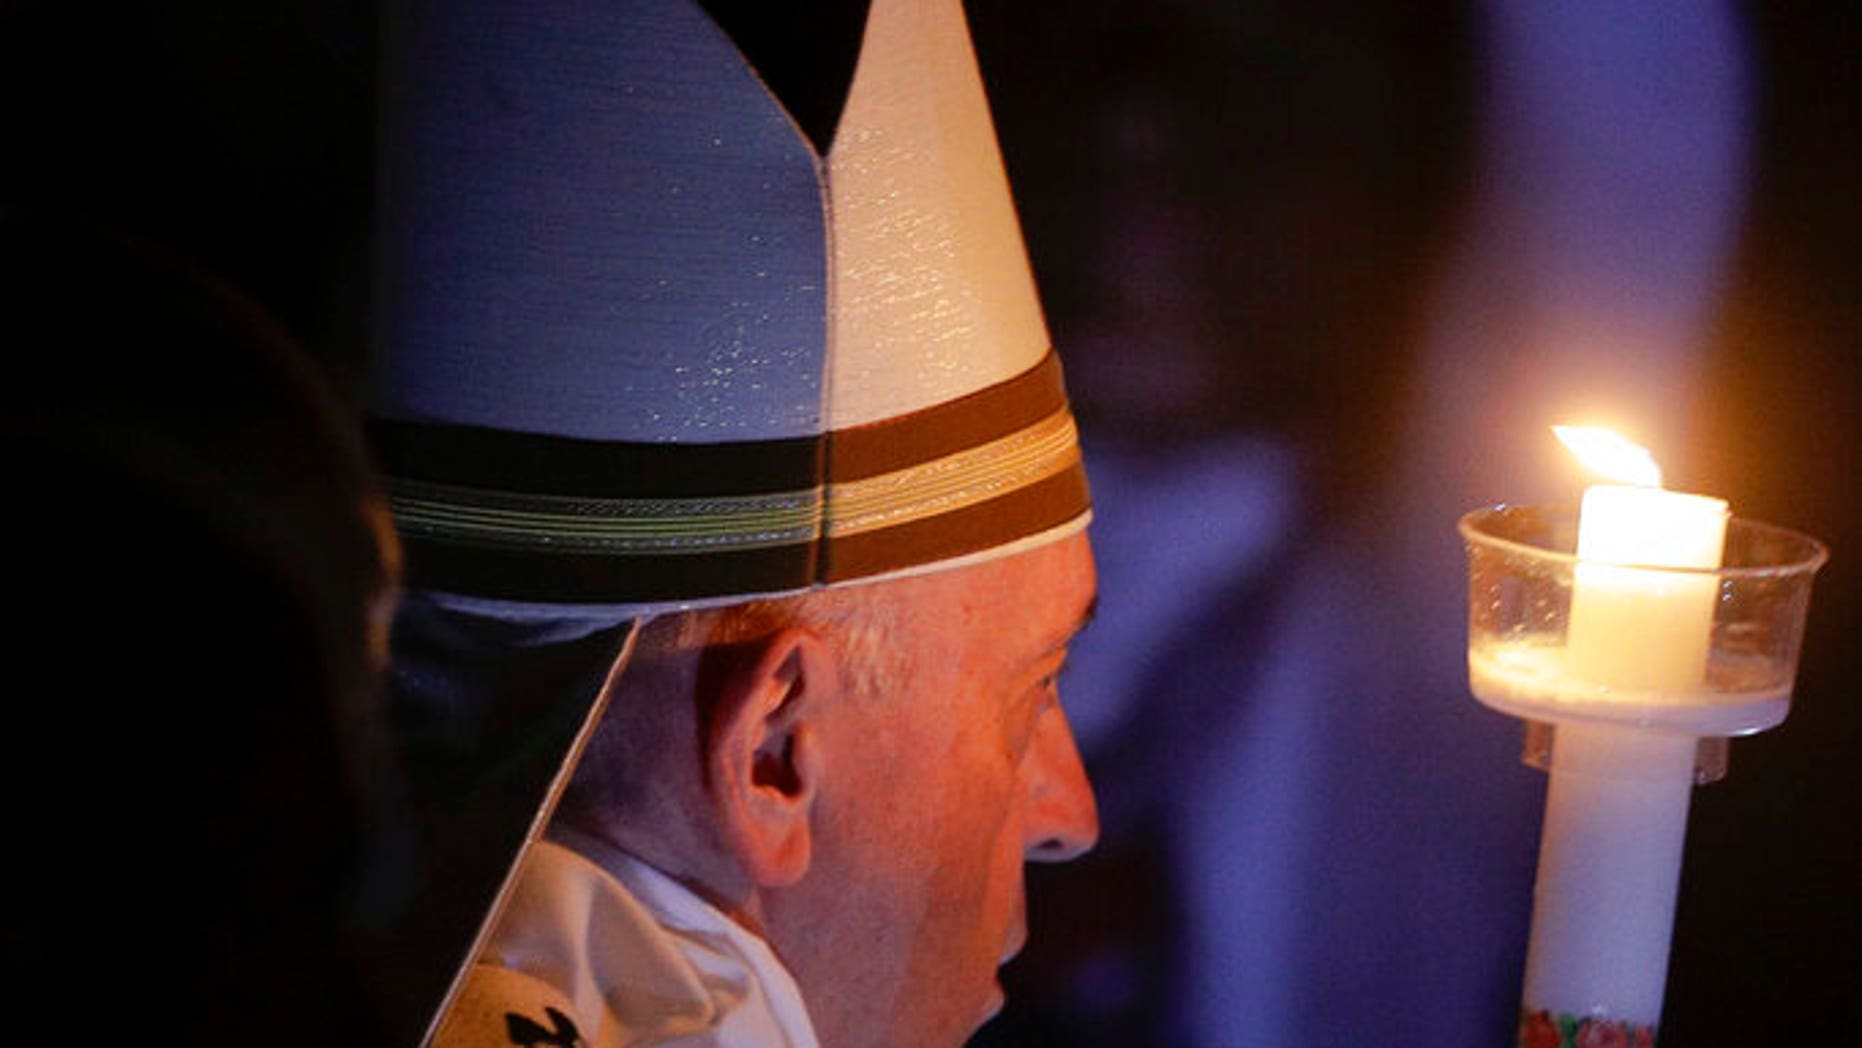 Pope Francis binds a candle as he presides over a honest Easter burial rite in St. Peter's Basilica during a Vatican, Saturday, Apr 21, 2019. (AP Photo/Gregorio Borgia)